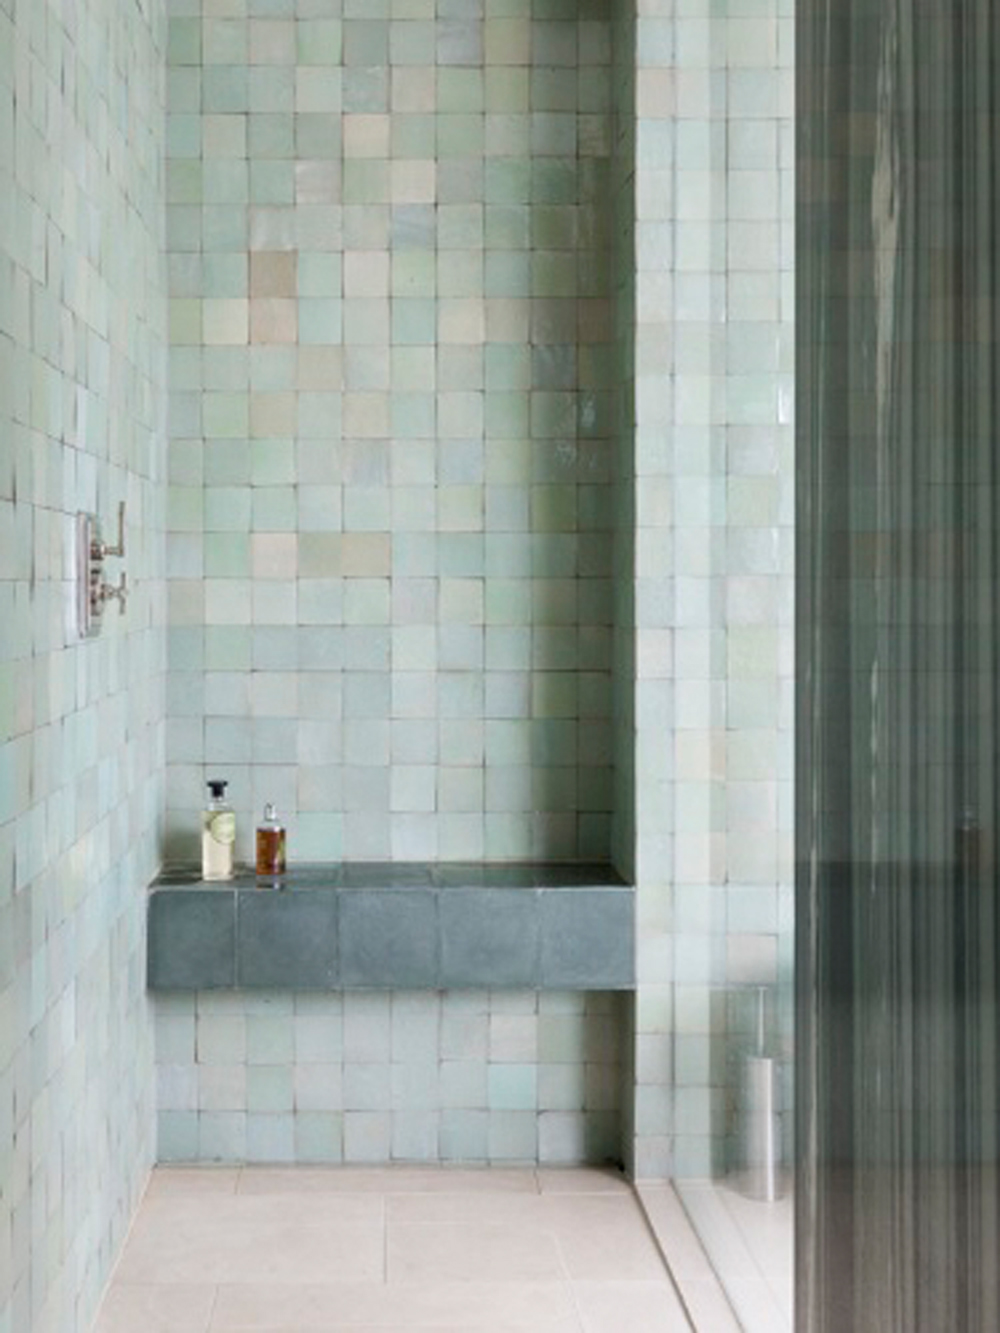 Bathroom renovation tips by First Sense || Eau de nil Zellige tiles create a soothing bathroom